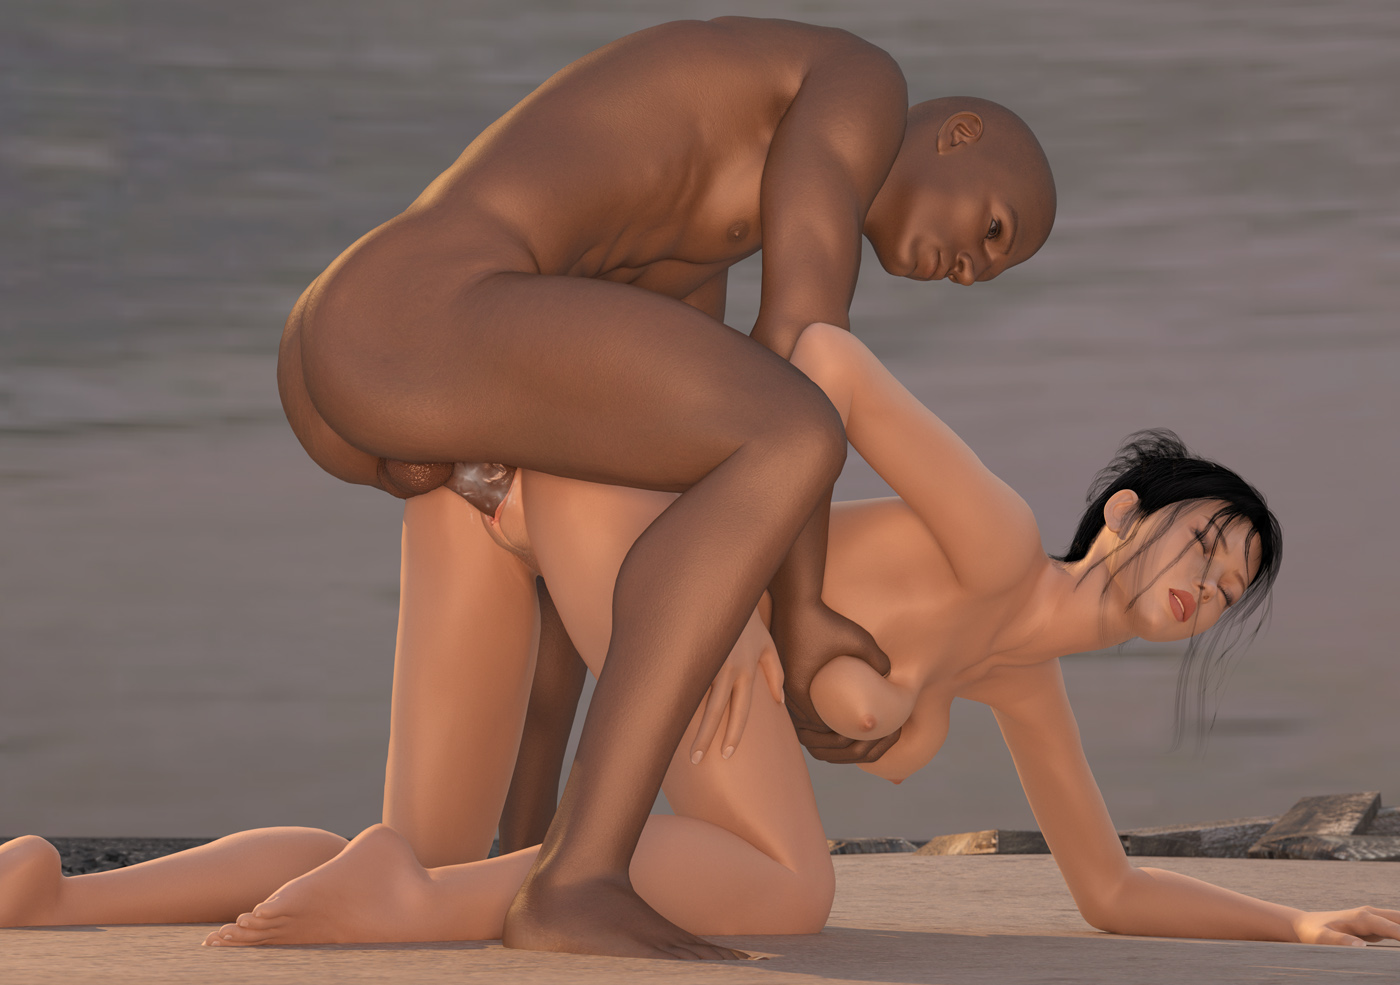 3d animation porn girls hd photo naked download